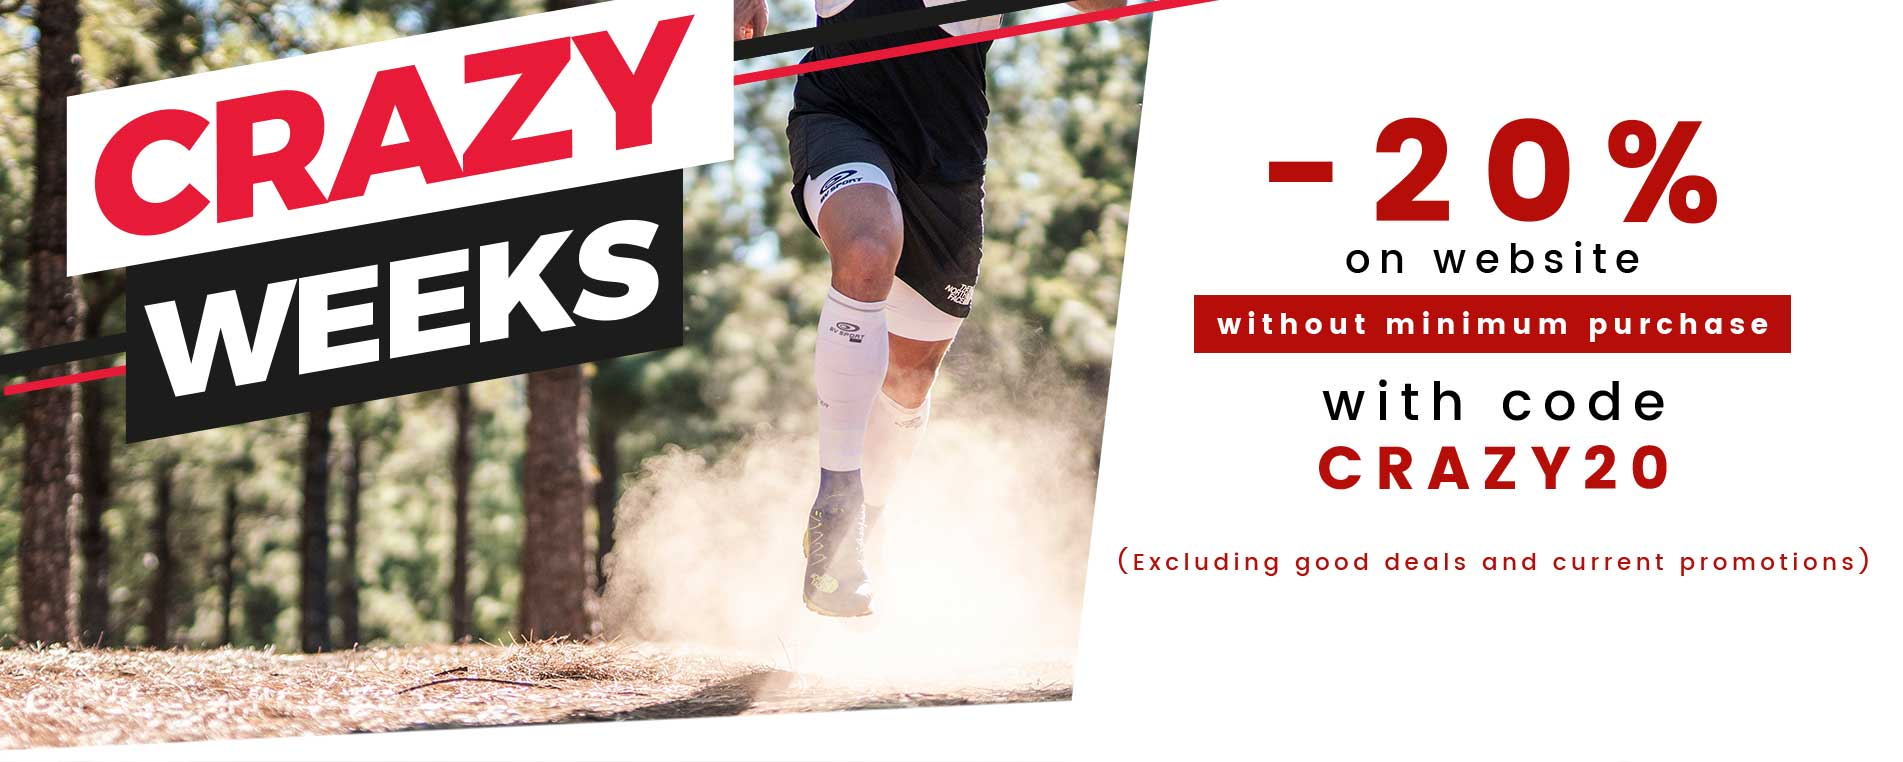 Crazy Weeks | From 16 to 30 September 2020, take advantage of a 20% discount on the bv sport website with the code CRAZY20. Offer valid excluding products already on sale or current promotions.